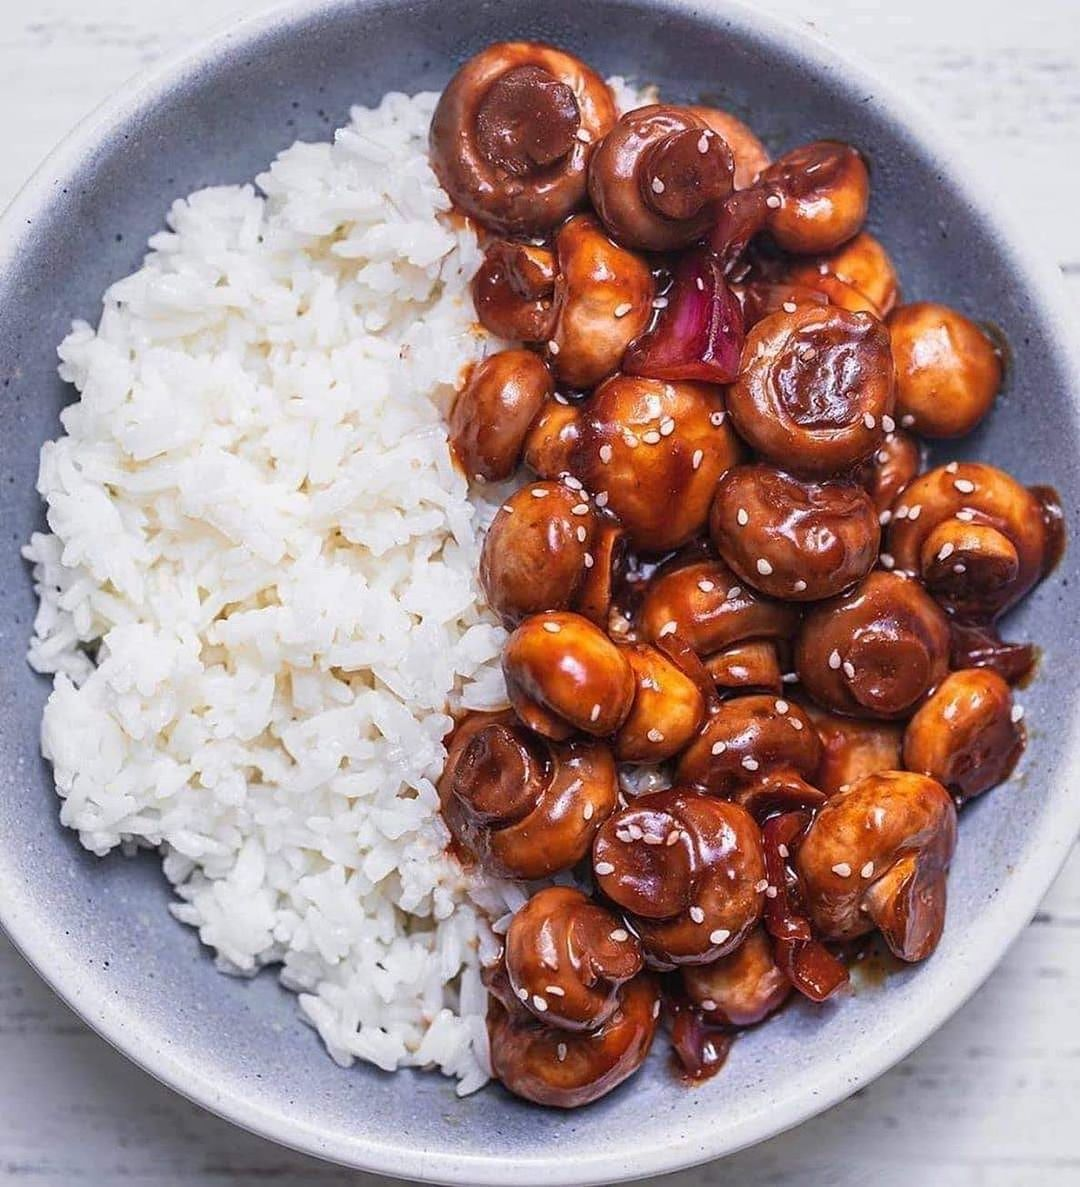 Balsamic Soy Garlic Mushrooms 🍄 So Delicious And Easy To